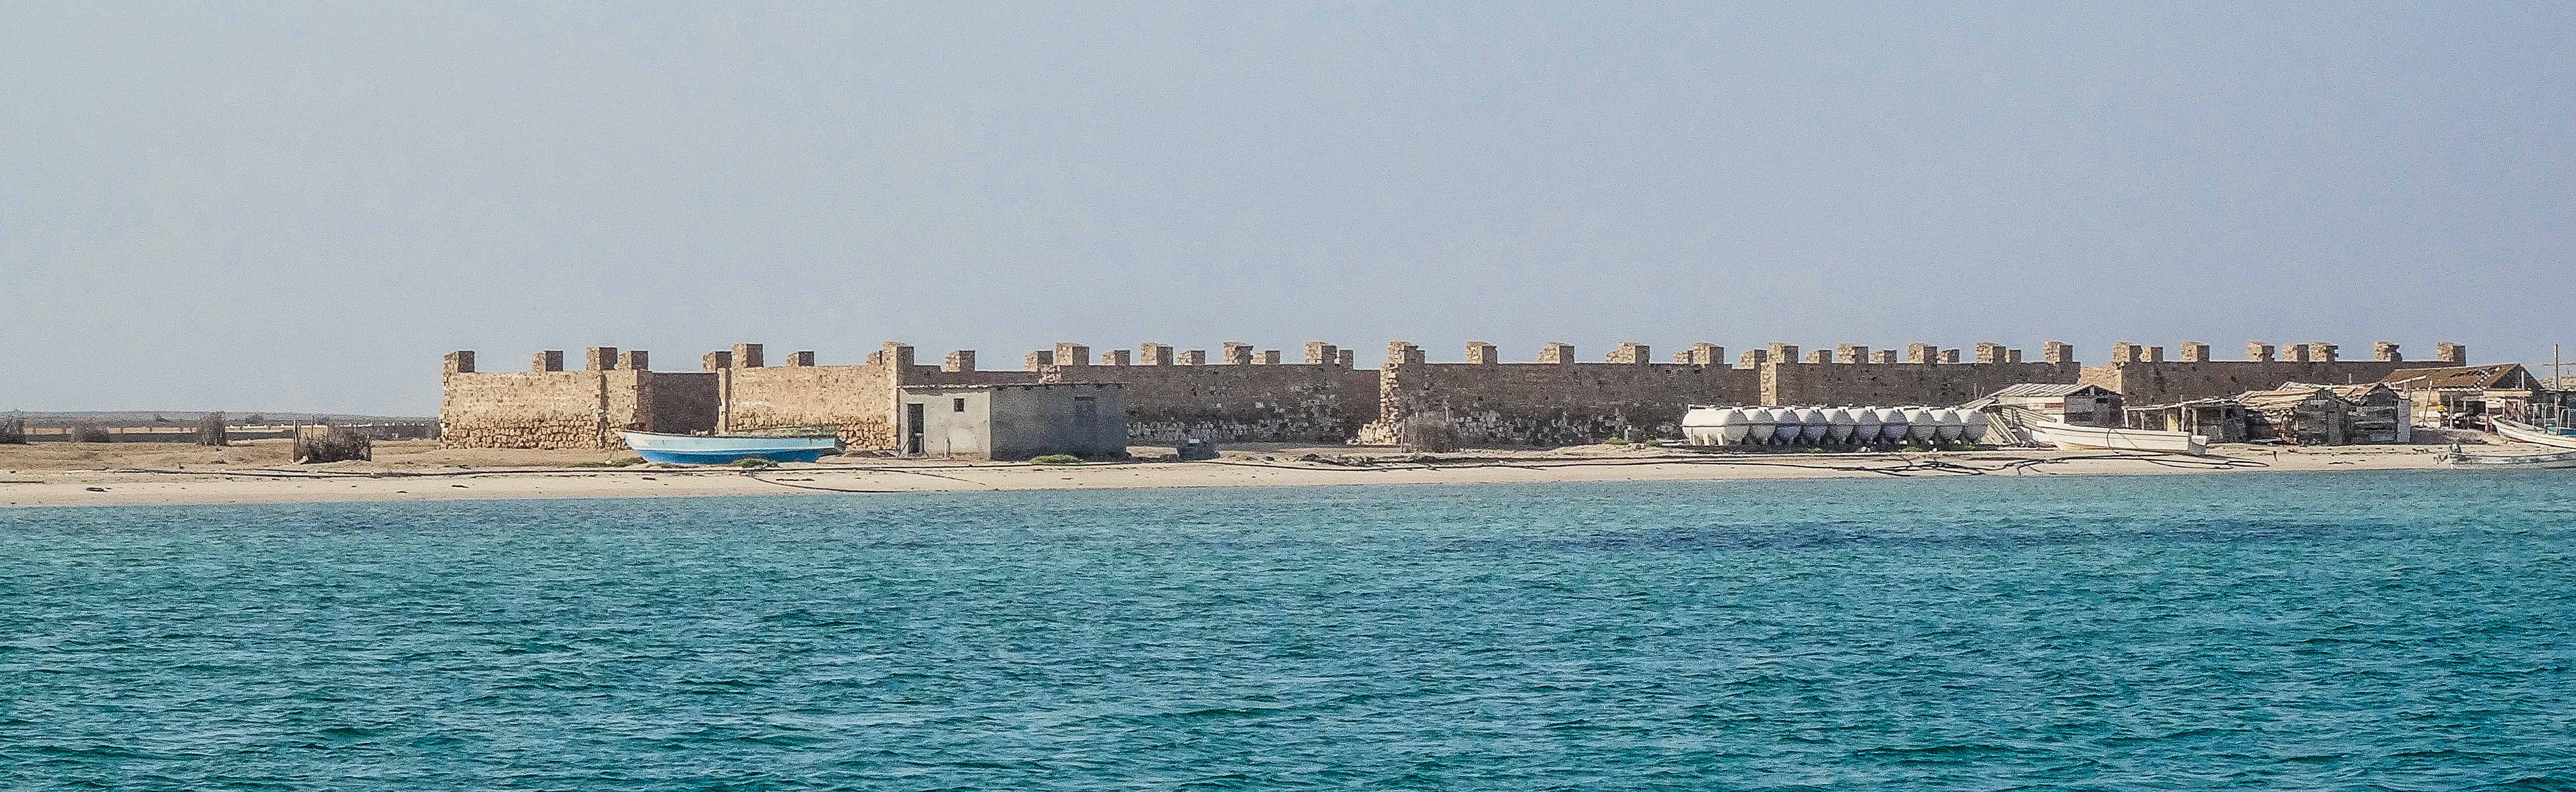 German Fort built during World War 2 in Farasan Archipelago (photo: Florent Egal)